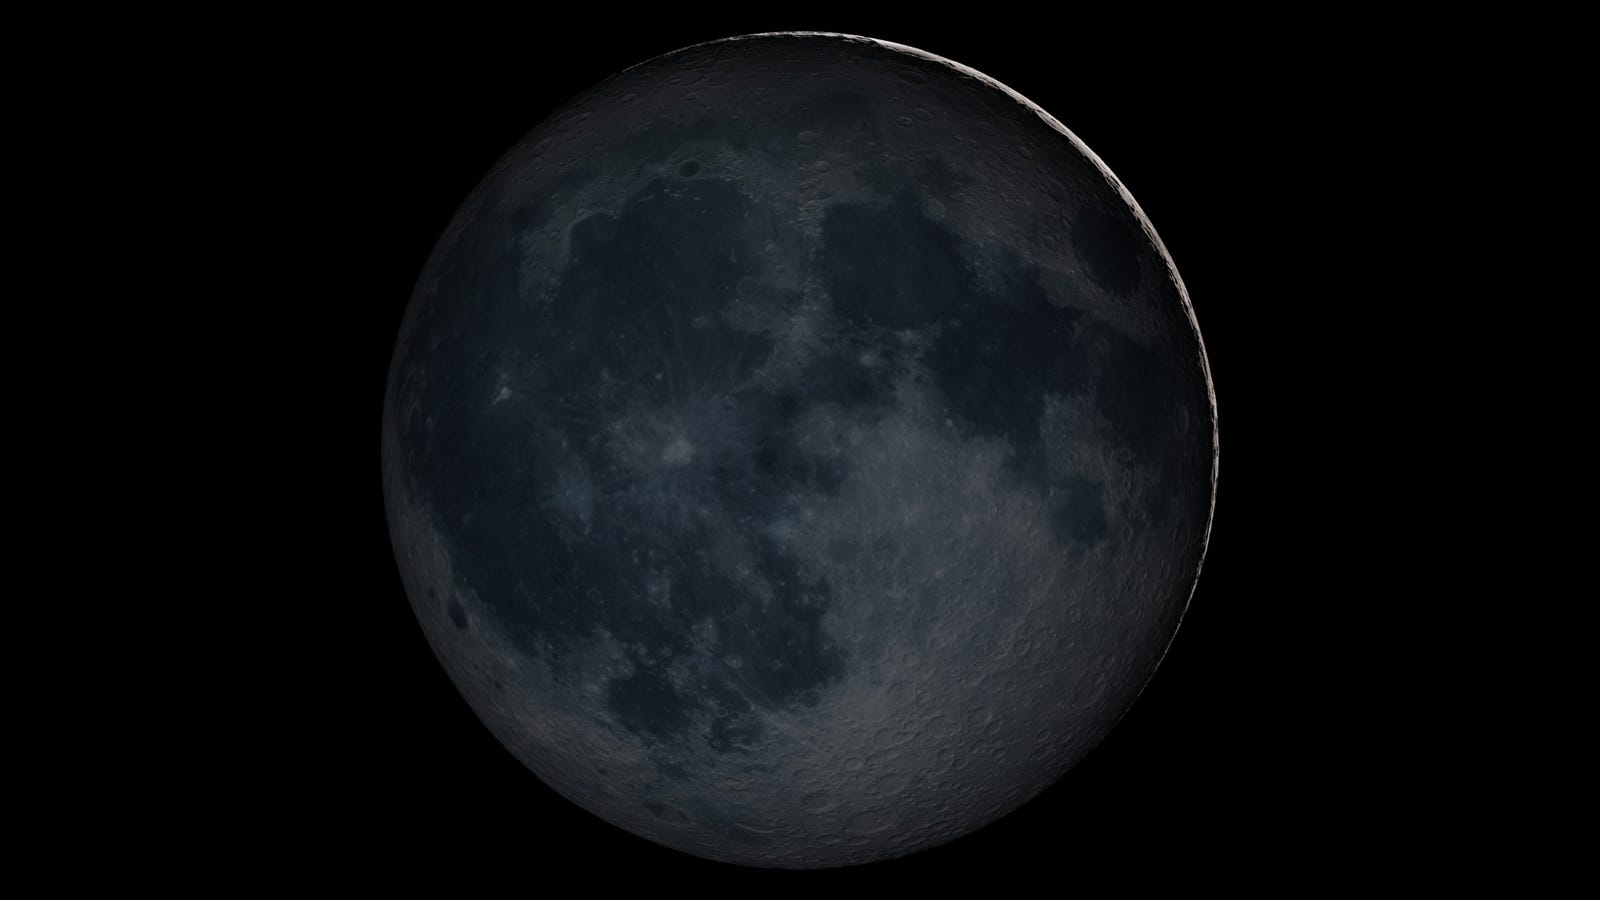 You Really Don't Need to Watch the Black Moon Tonight